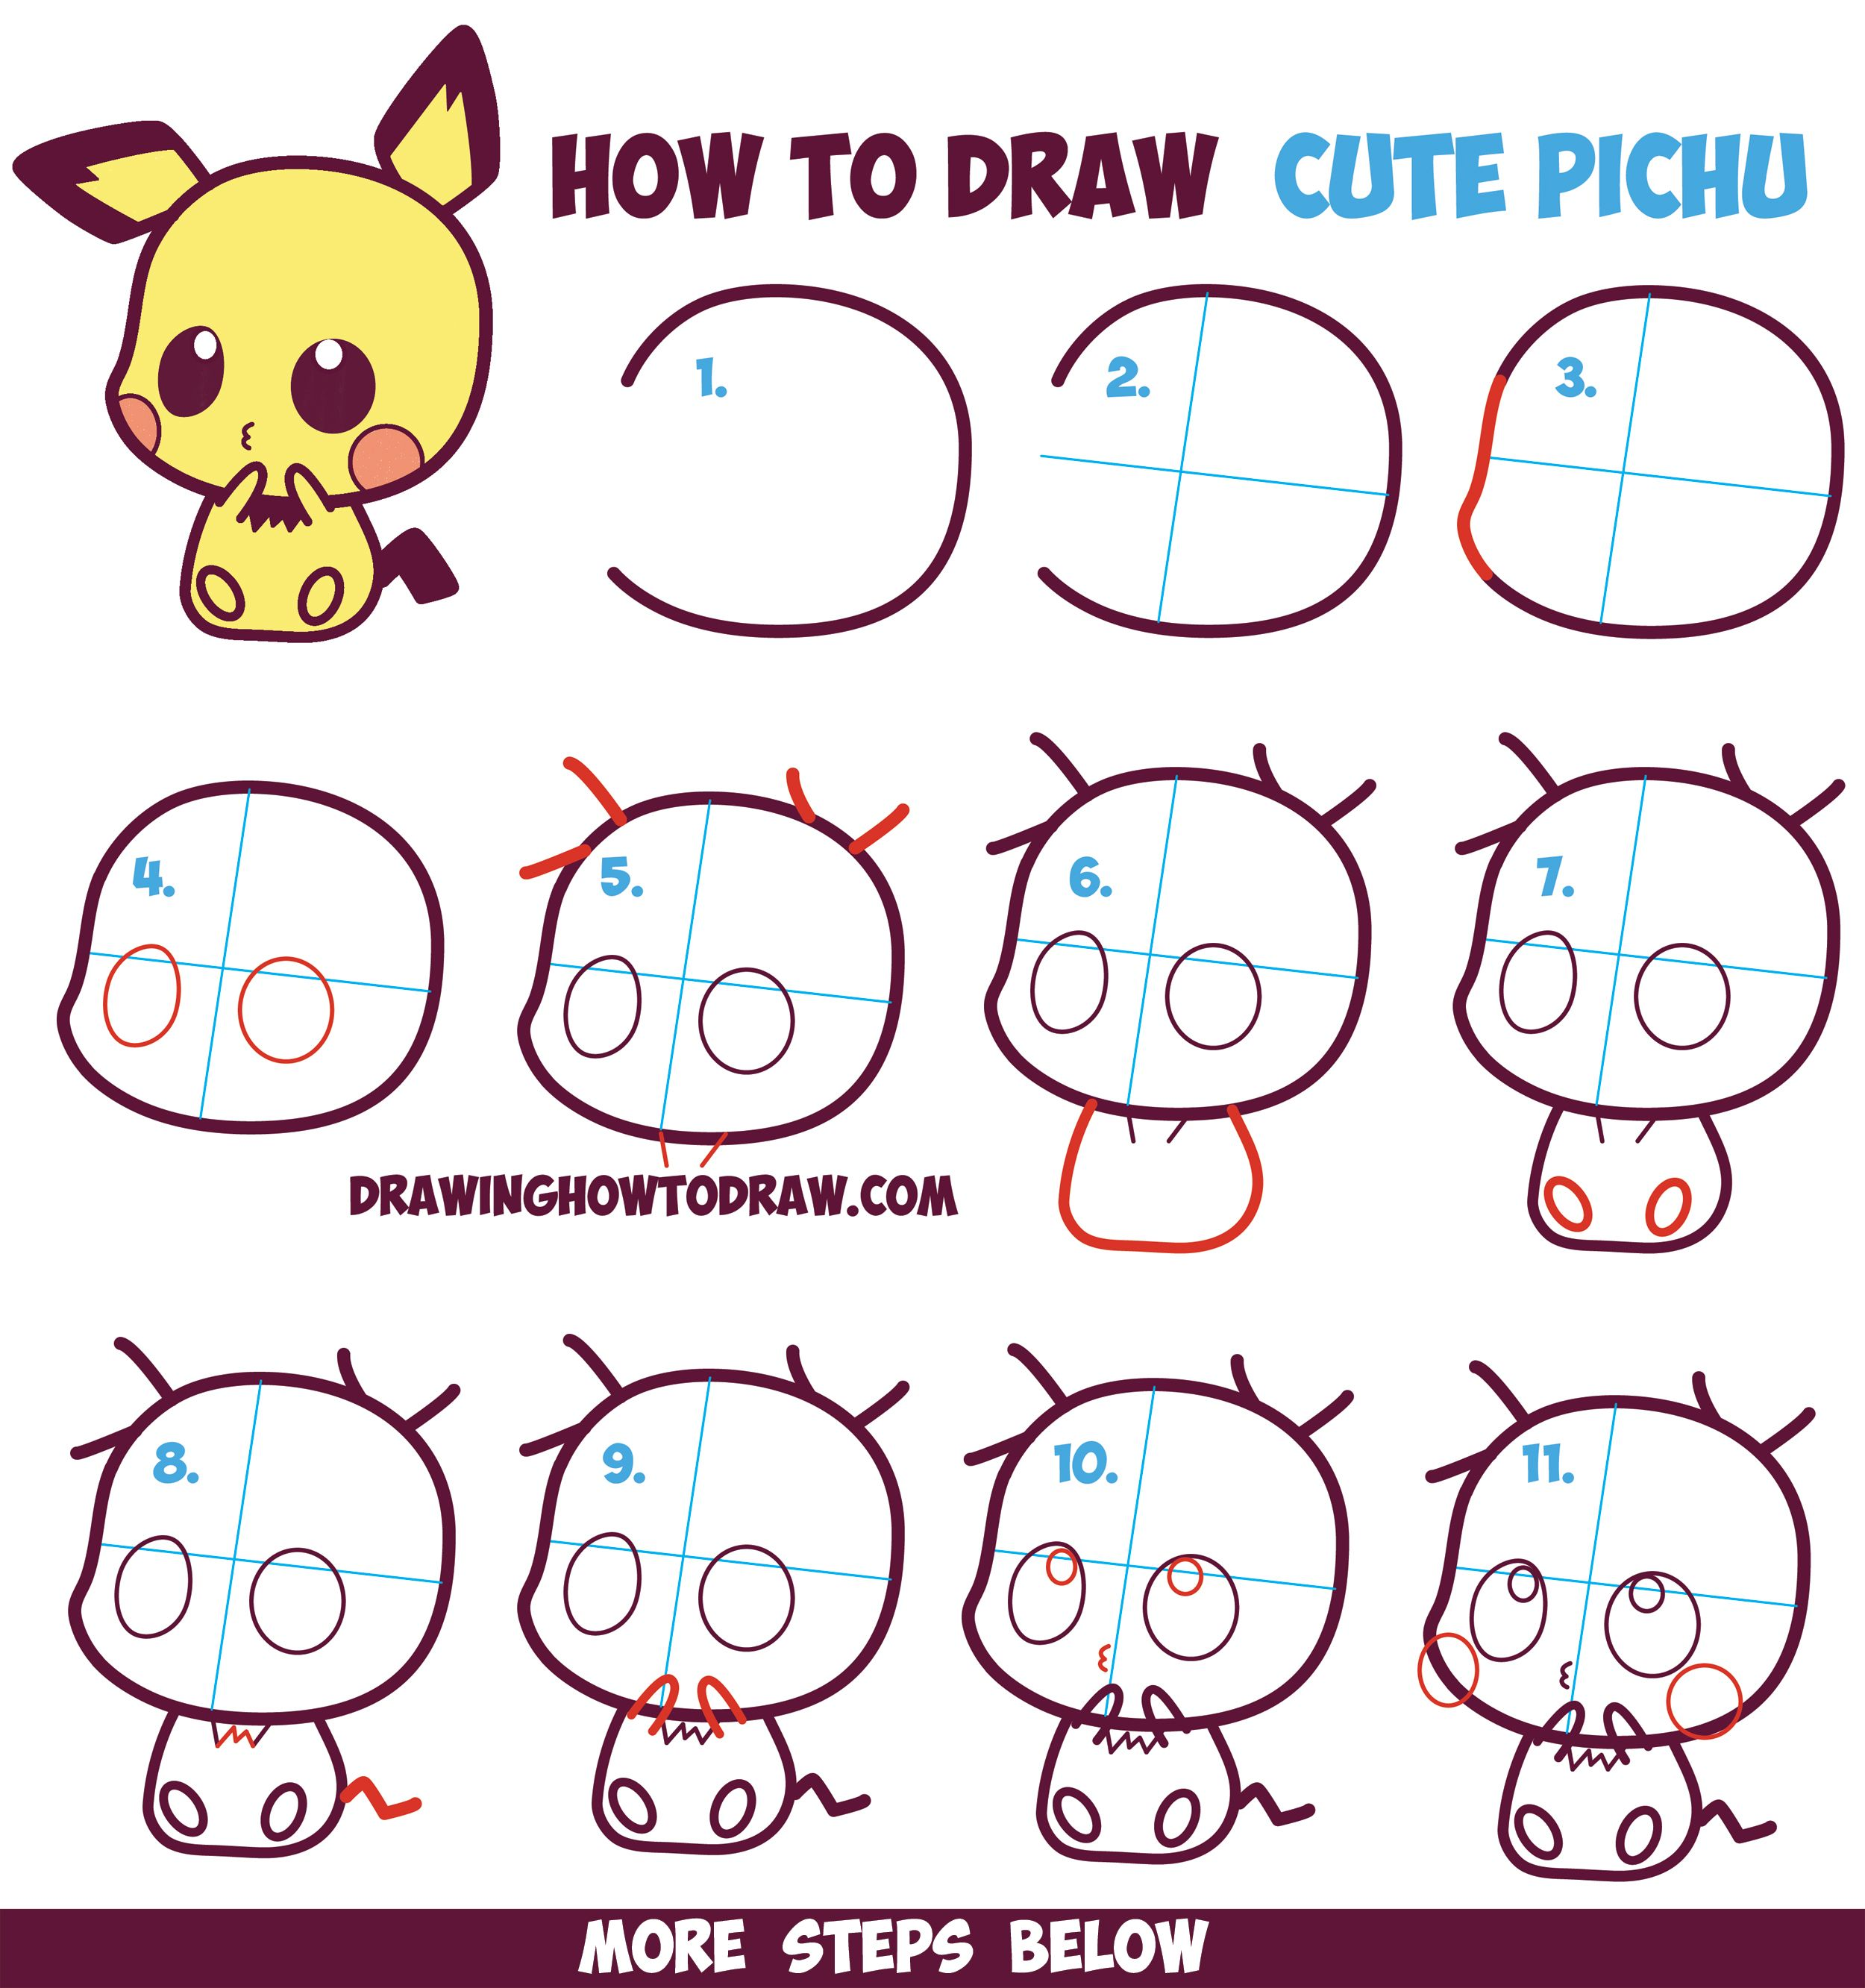 how to draw cute kawaii chibi pichu from pokemon in